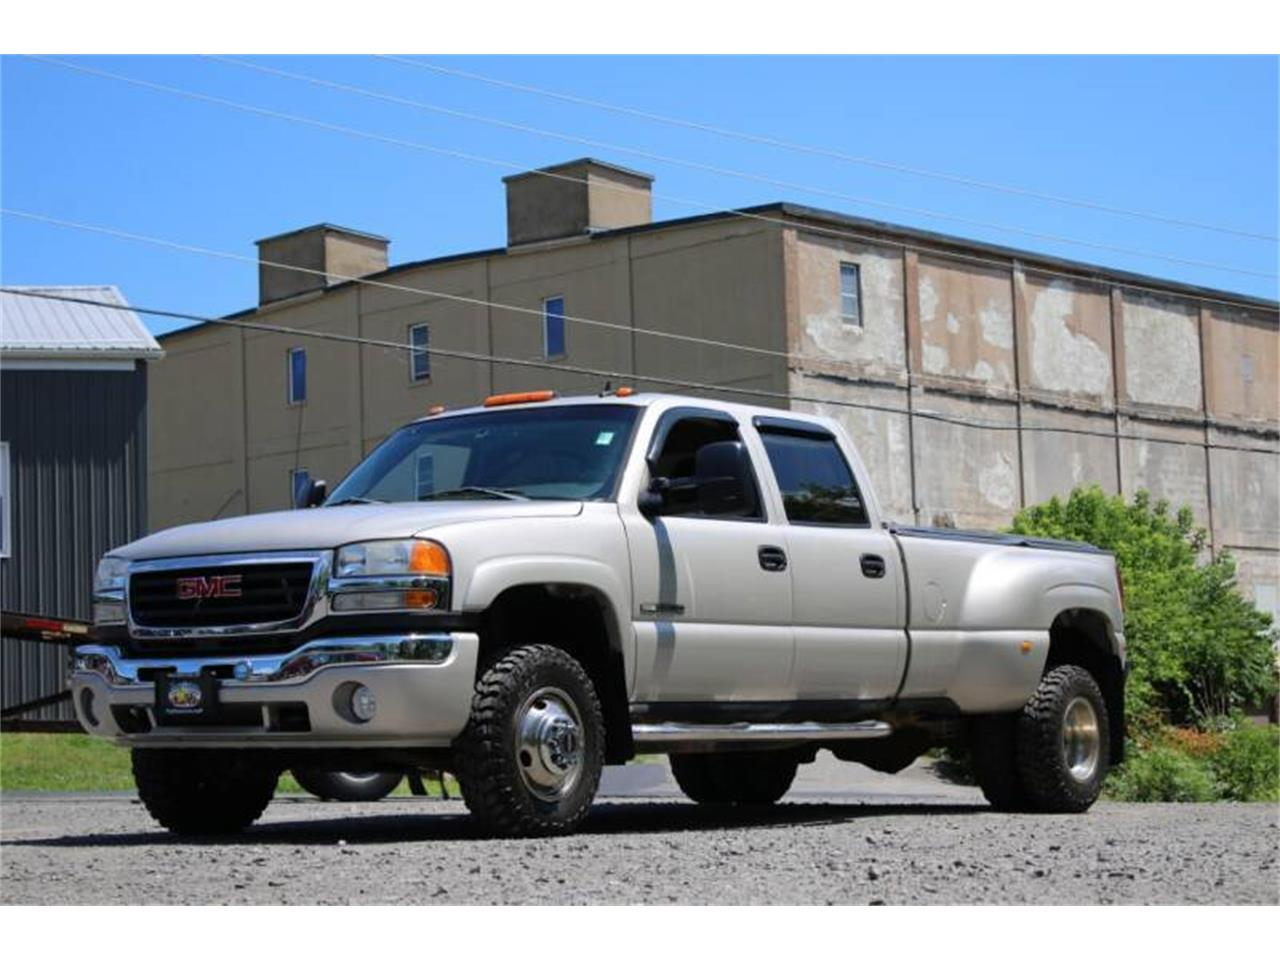 for sale 2006 gmc sierra in hilton, new york cars - hilton, ny at geebo